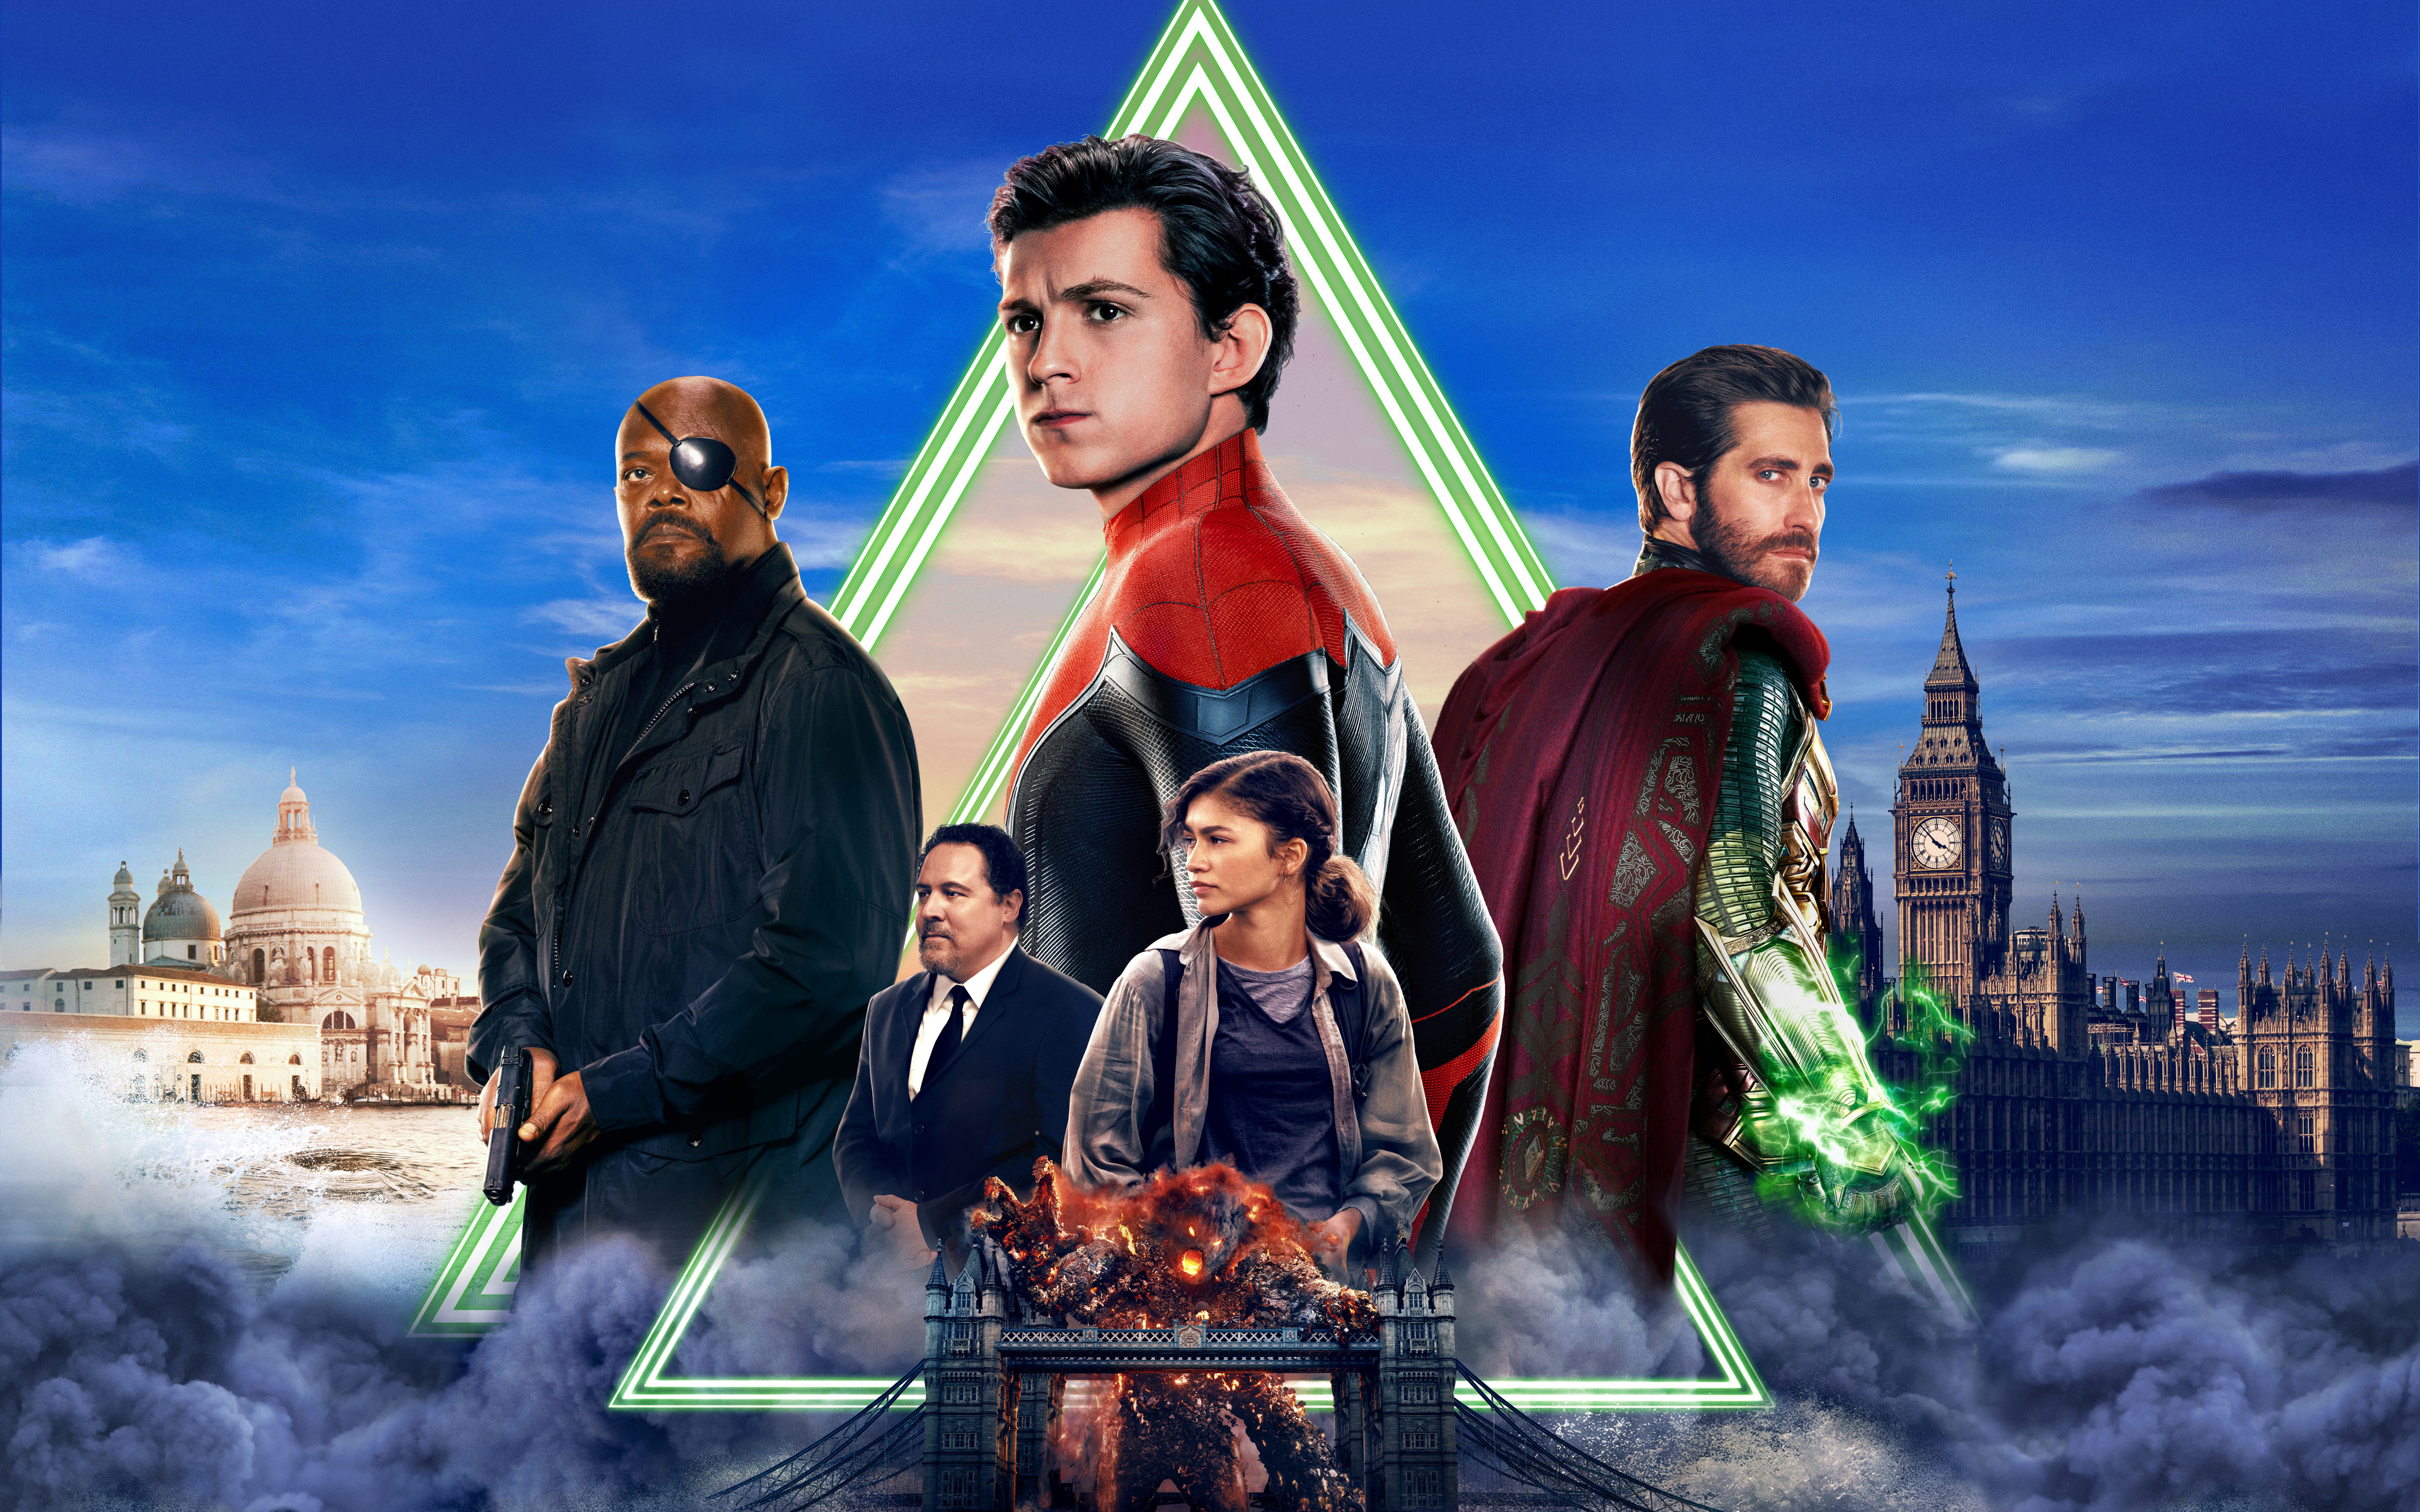 Wallpaper Poster with Characters from Spider Man: Far from home